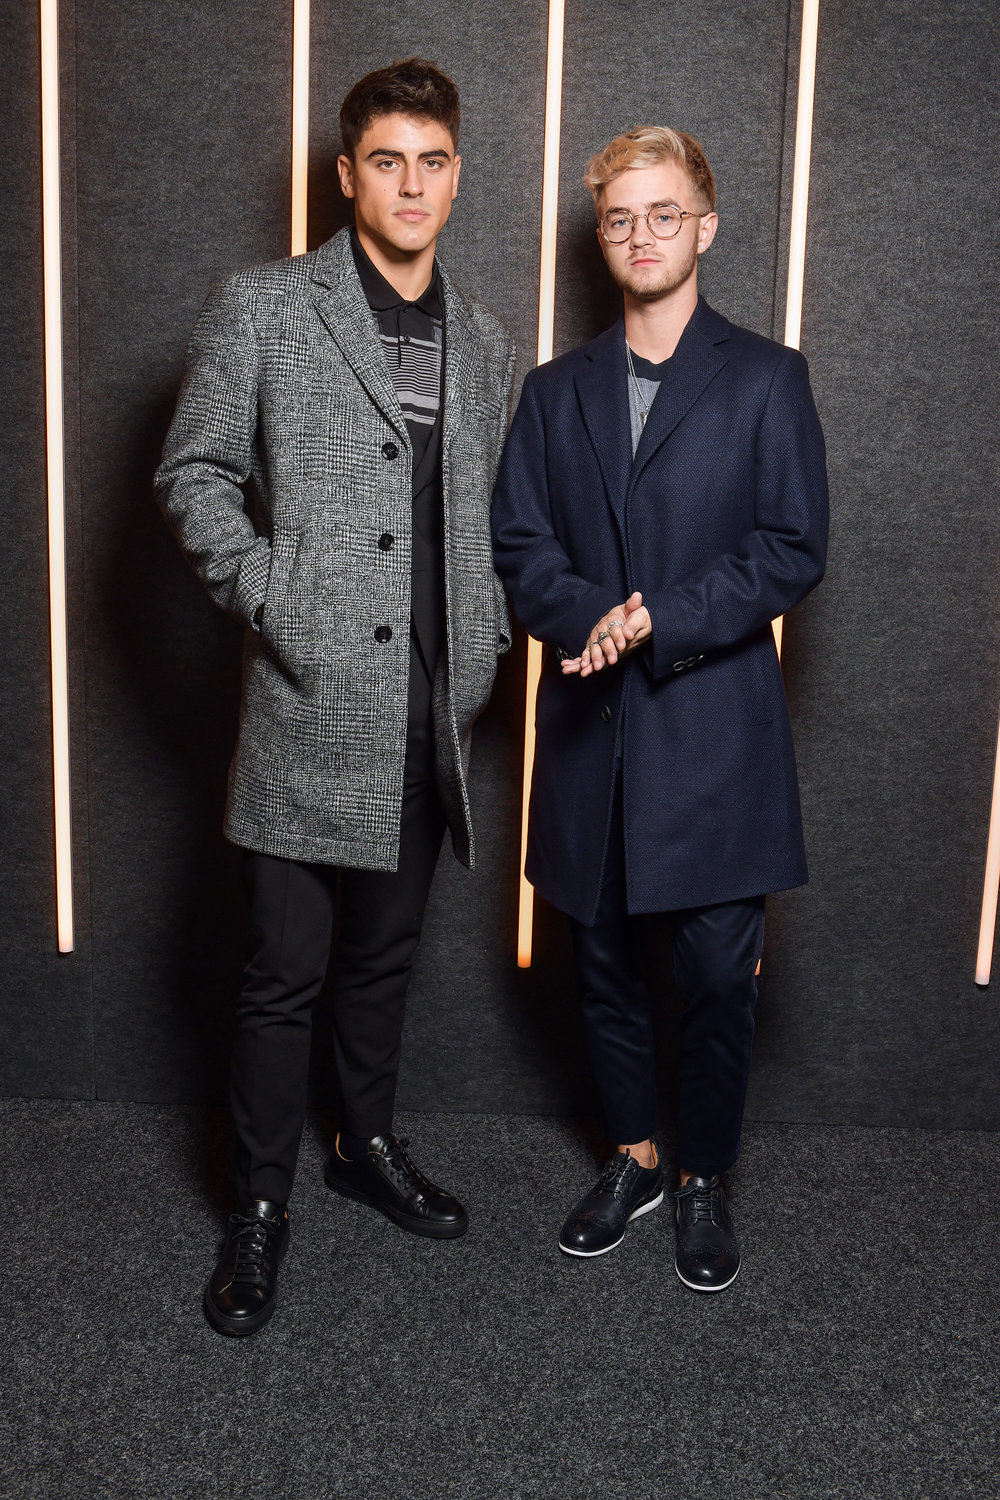 From Left to Right: Jack Gilinsky, and Jack Johnson backstage at the BOSS Fall/Winter 2019 show at Basketball City during New York Fashion Week on Wednesday, February 13, in New York City. Photography, Courtesy of BOSS.